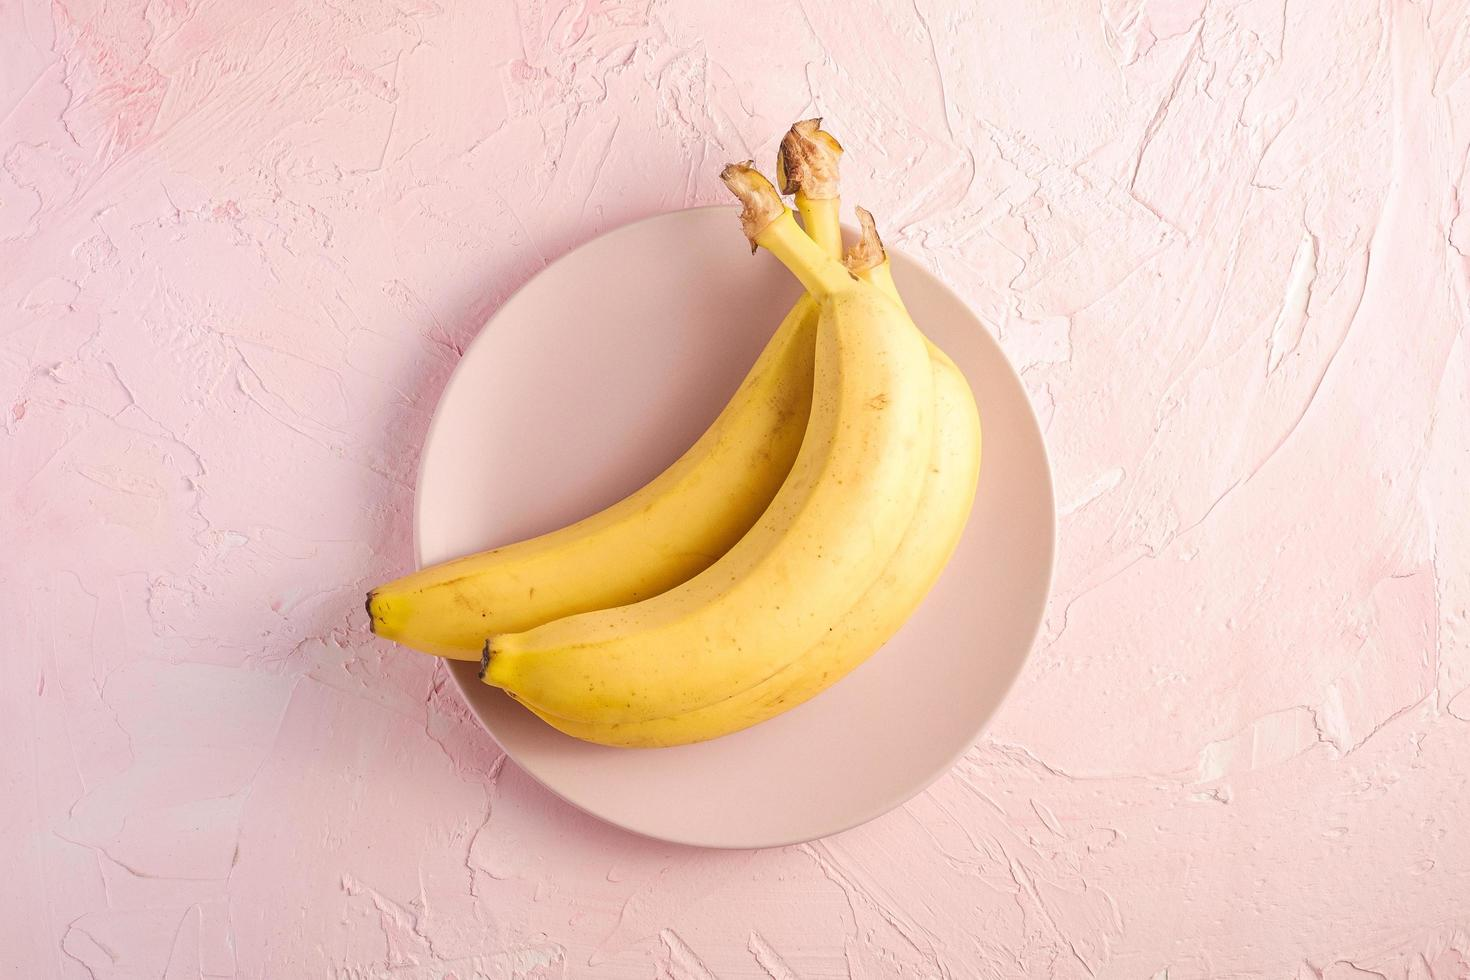 Bananas on pink textured background photo